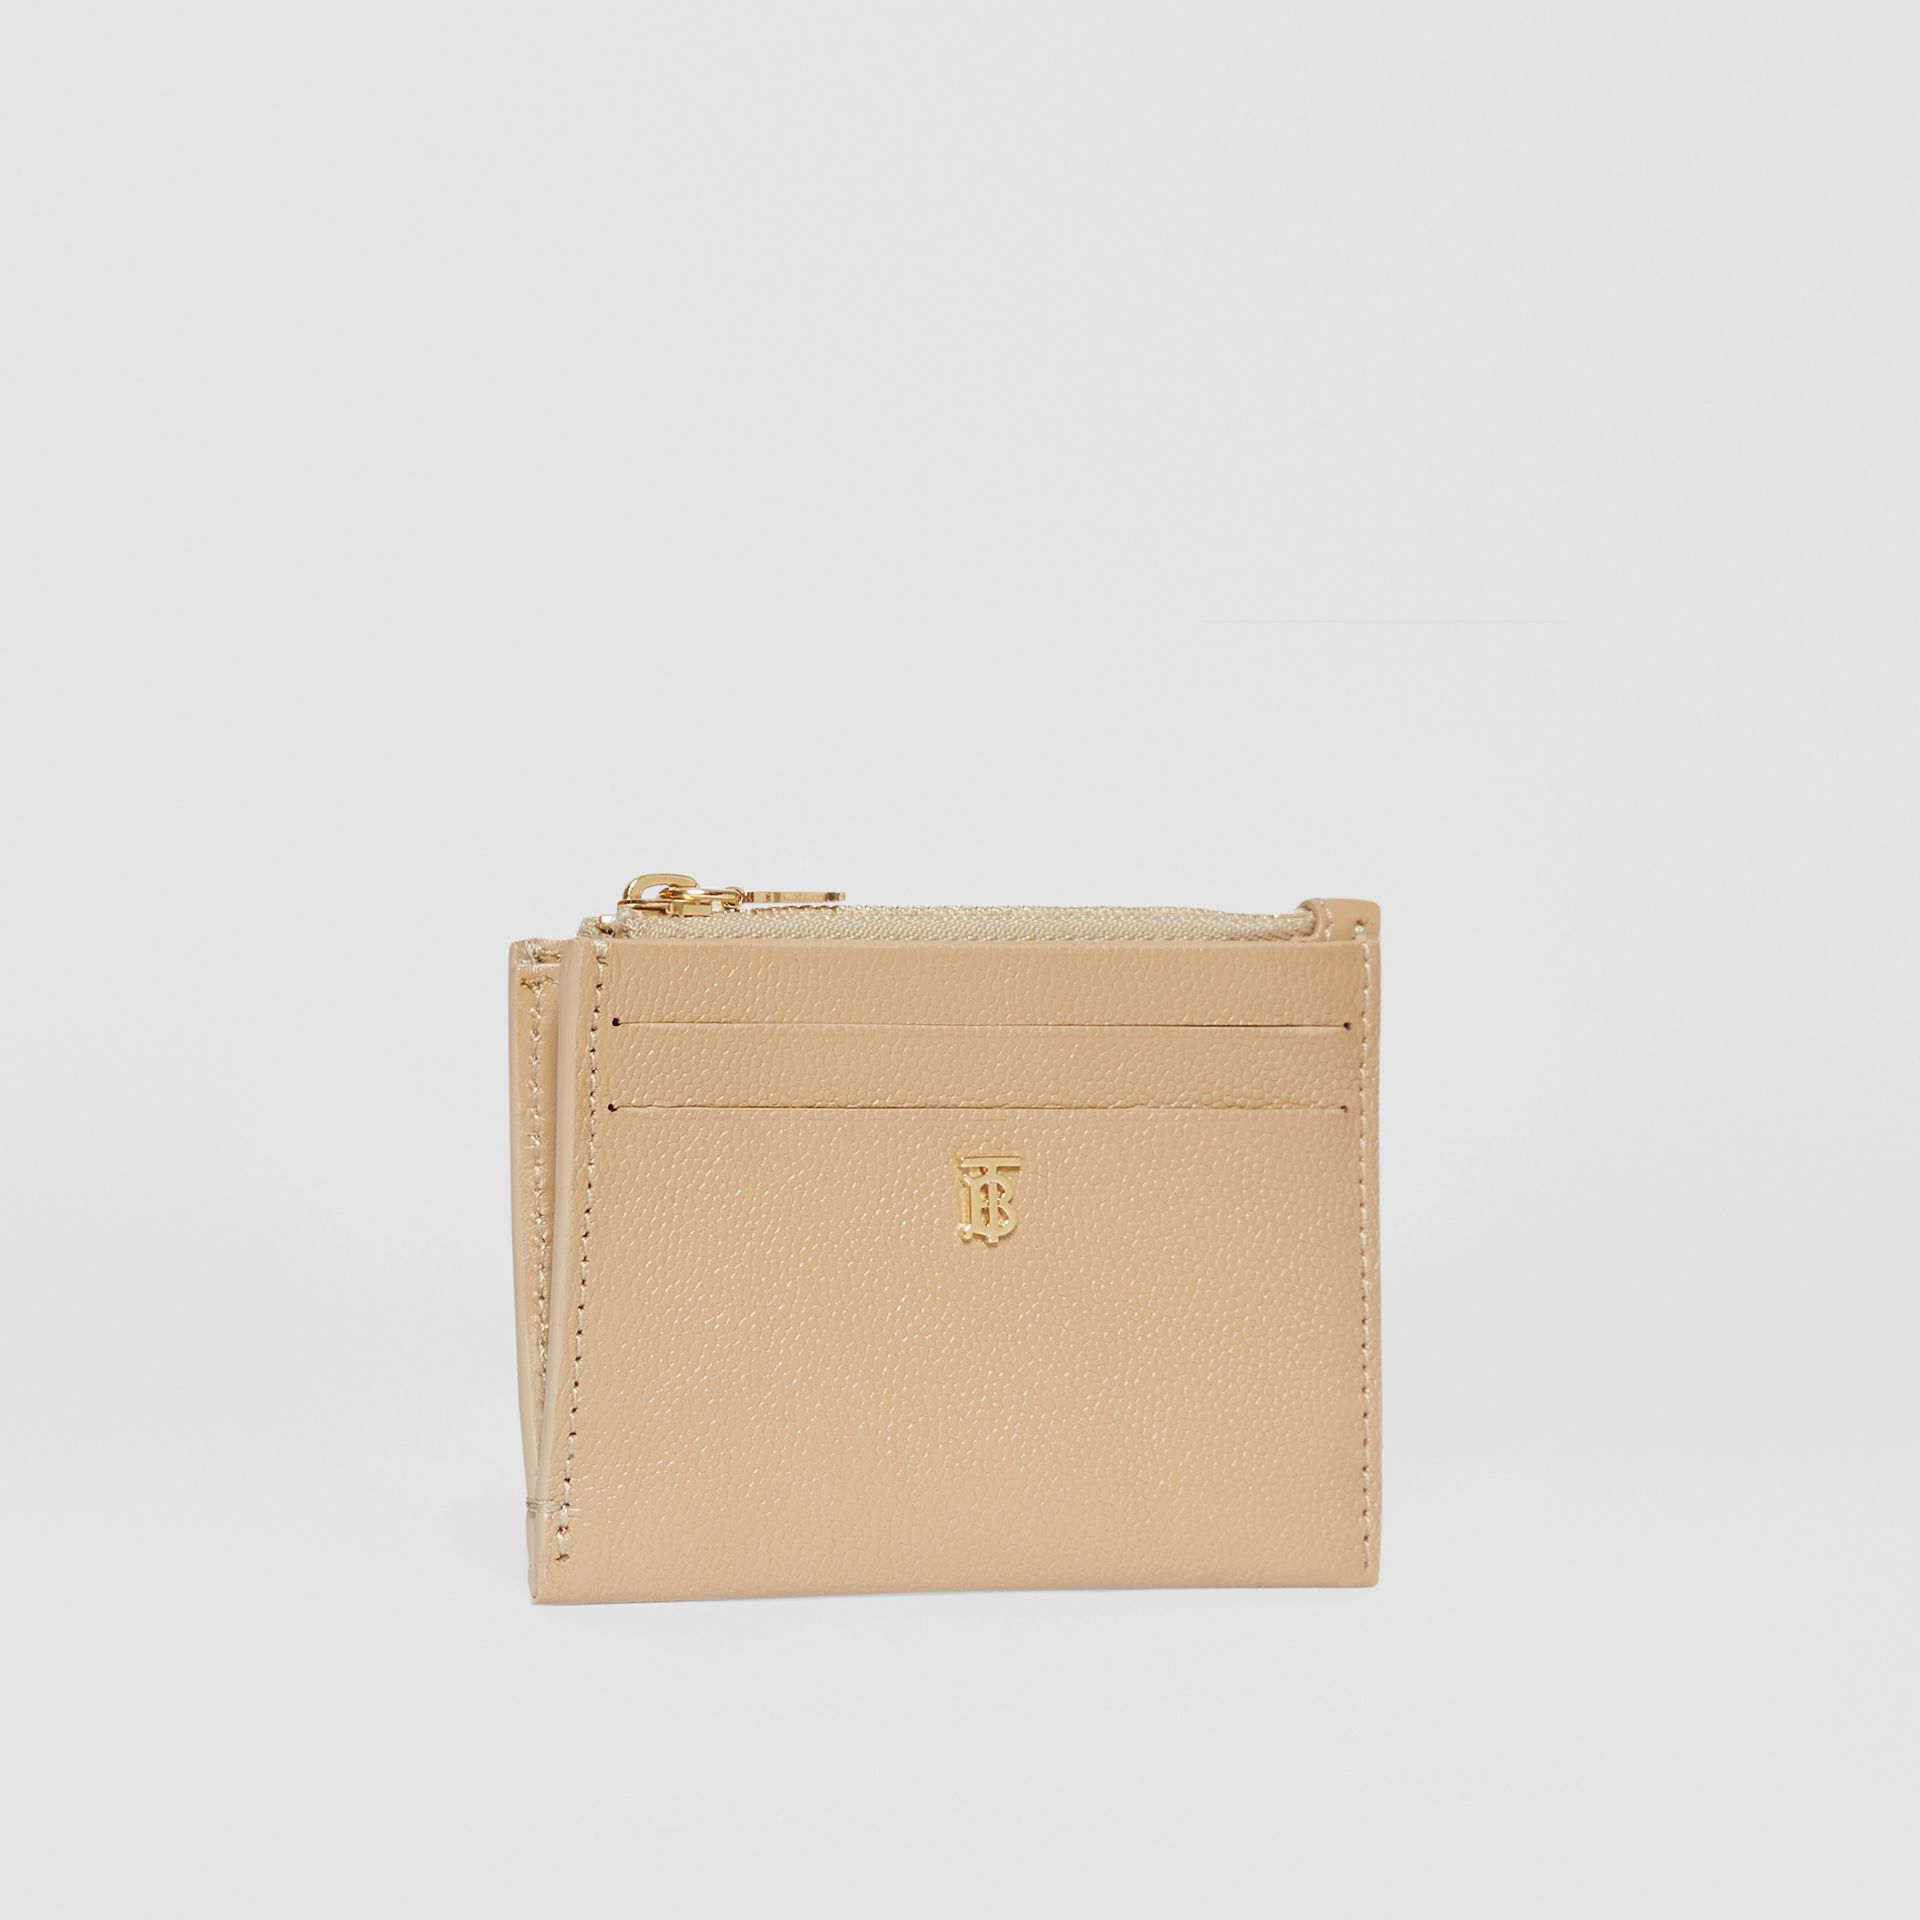 Monogram Motif Grainy Leather Zip Card Case in Archive Beige - Women | Burberry Canada - gallery image 3